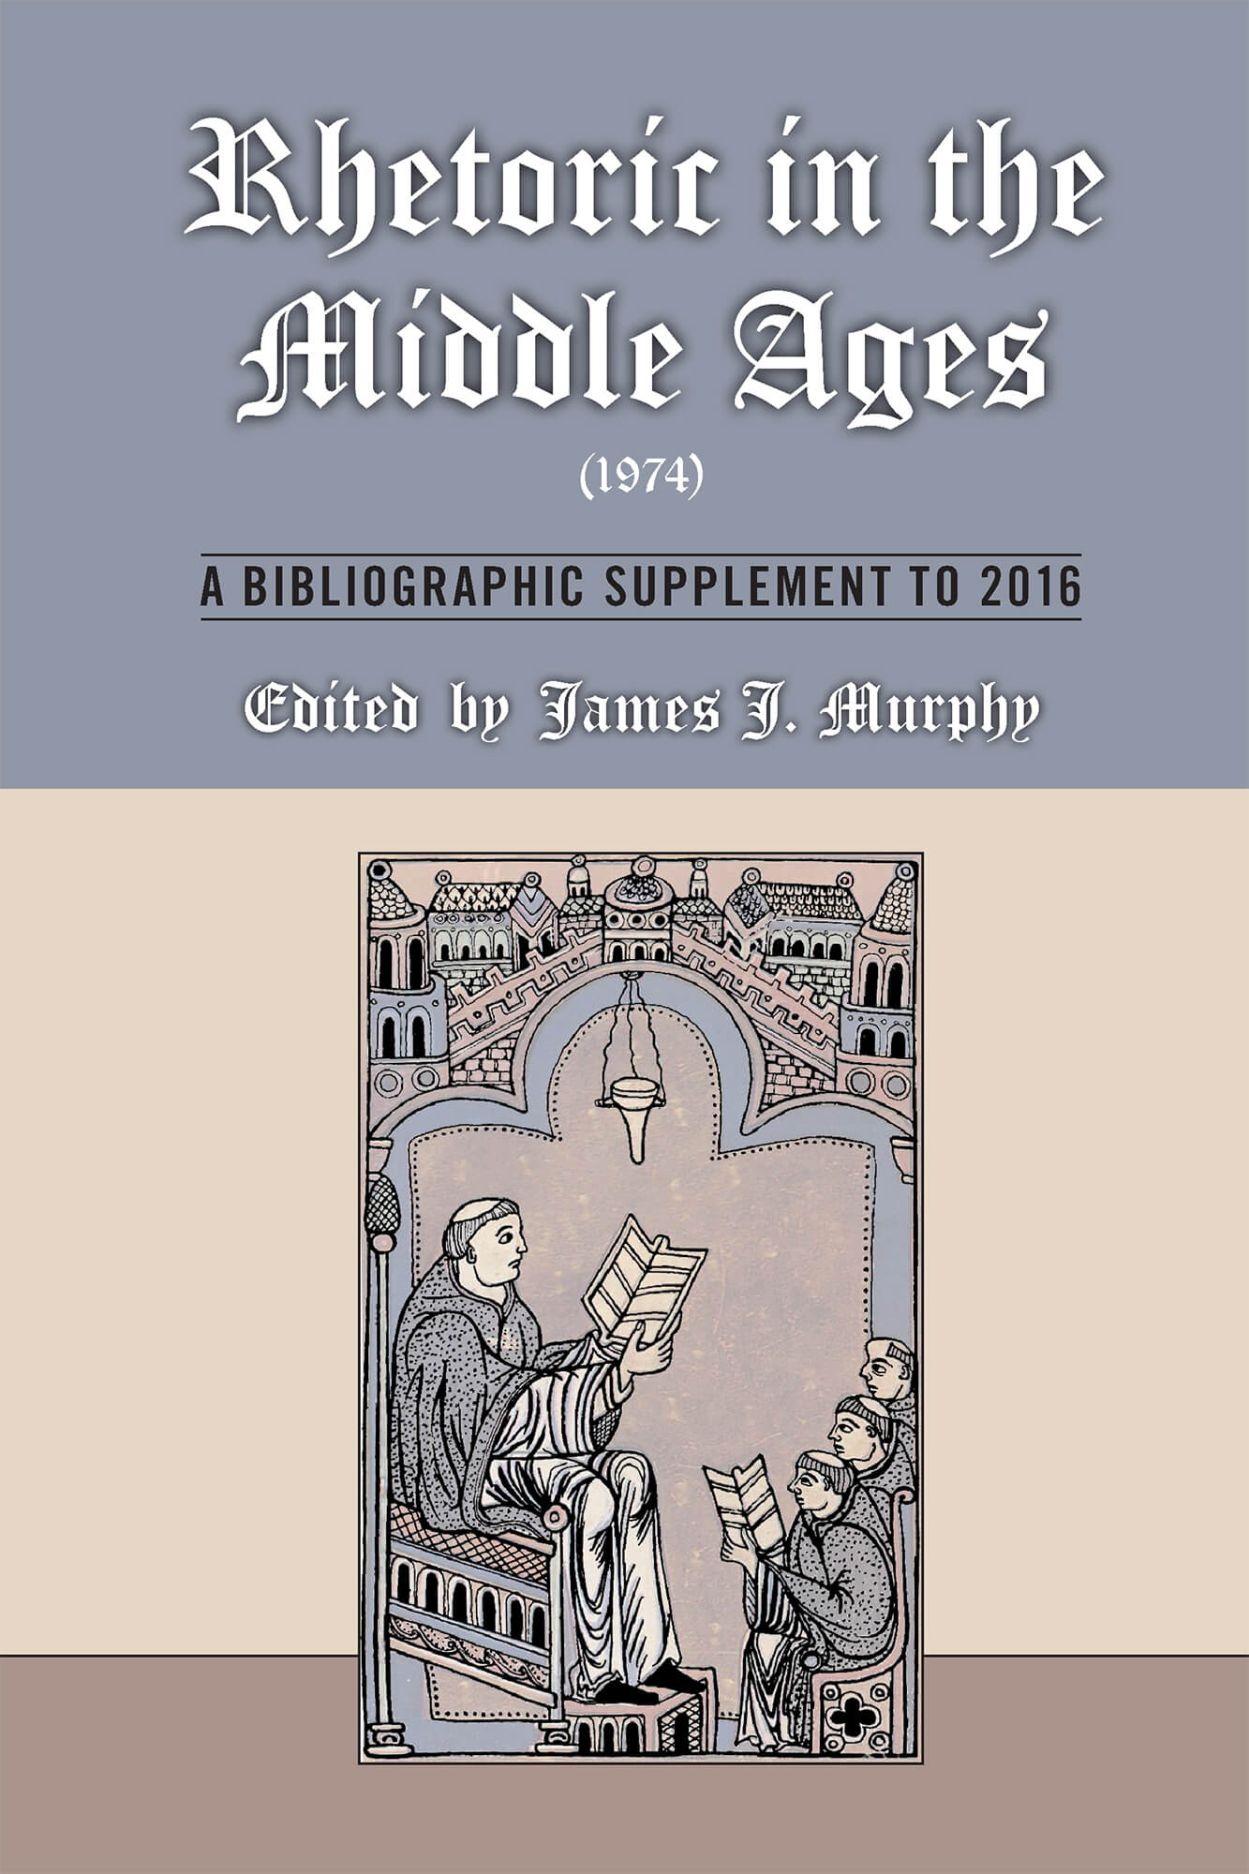 Rhetoric in the Middle Ages (1974): A Bibliographic Supplement